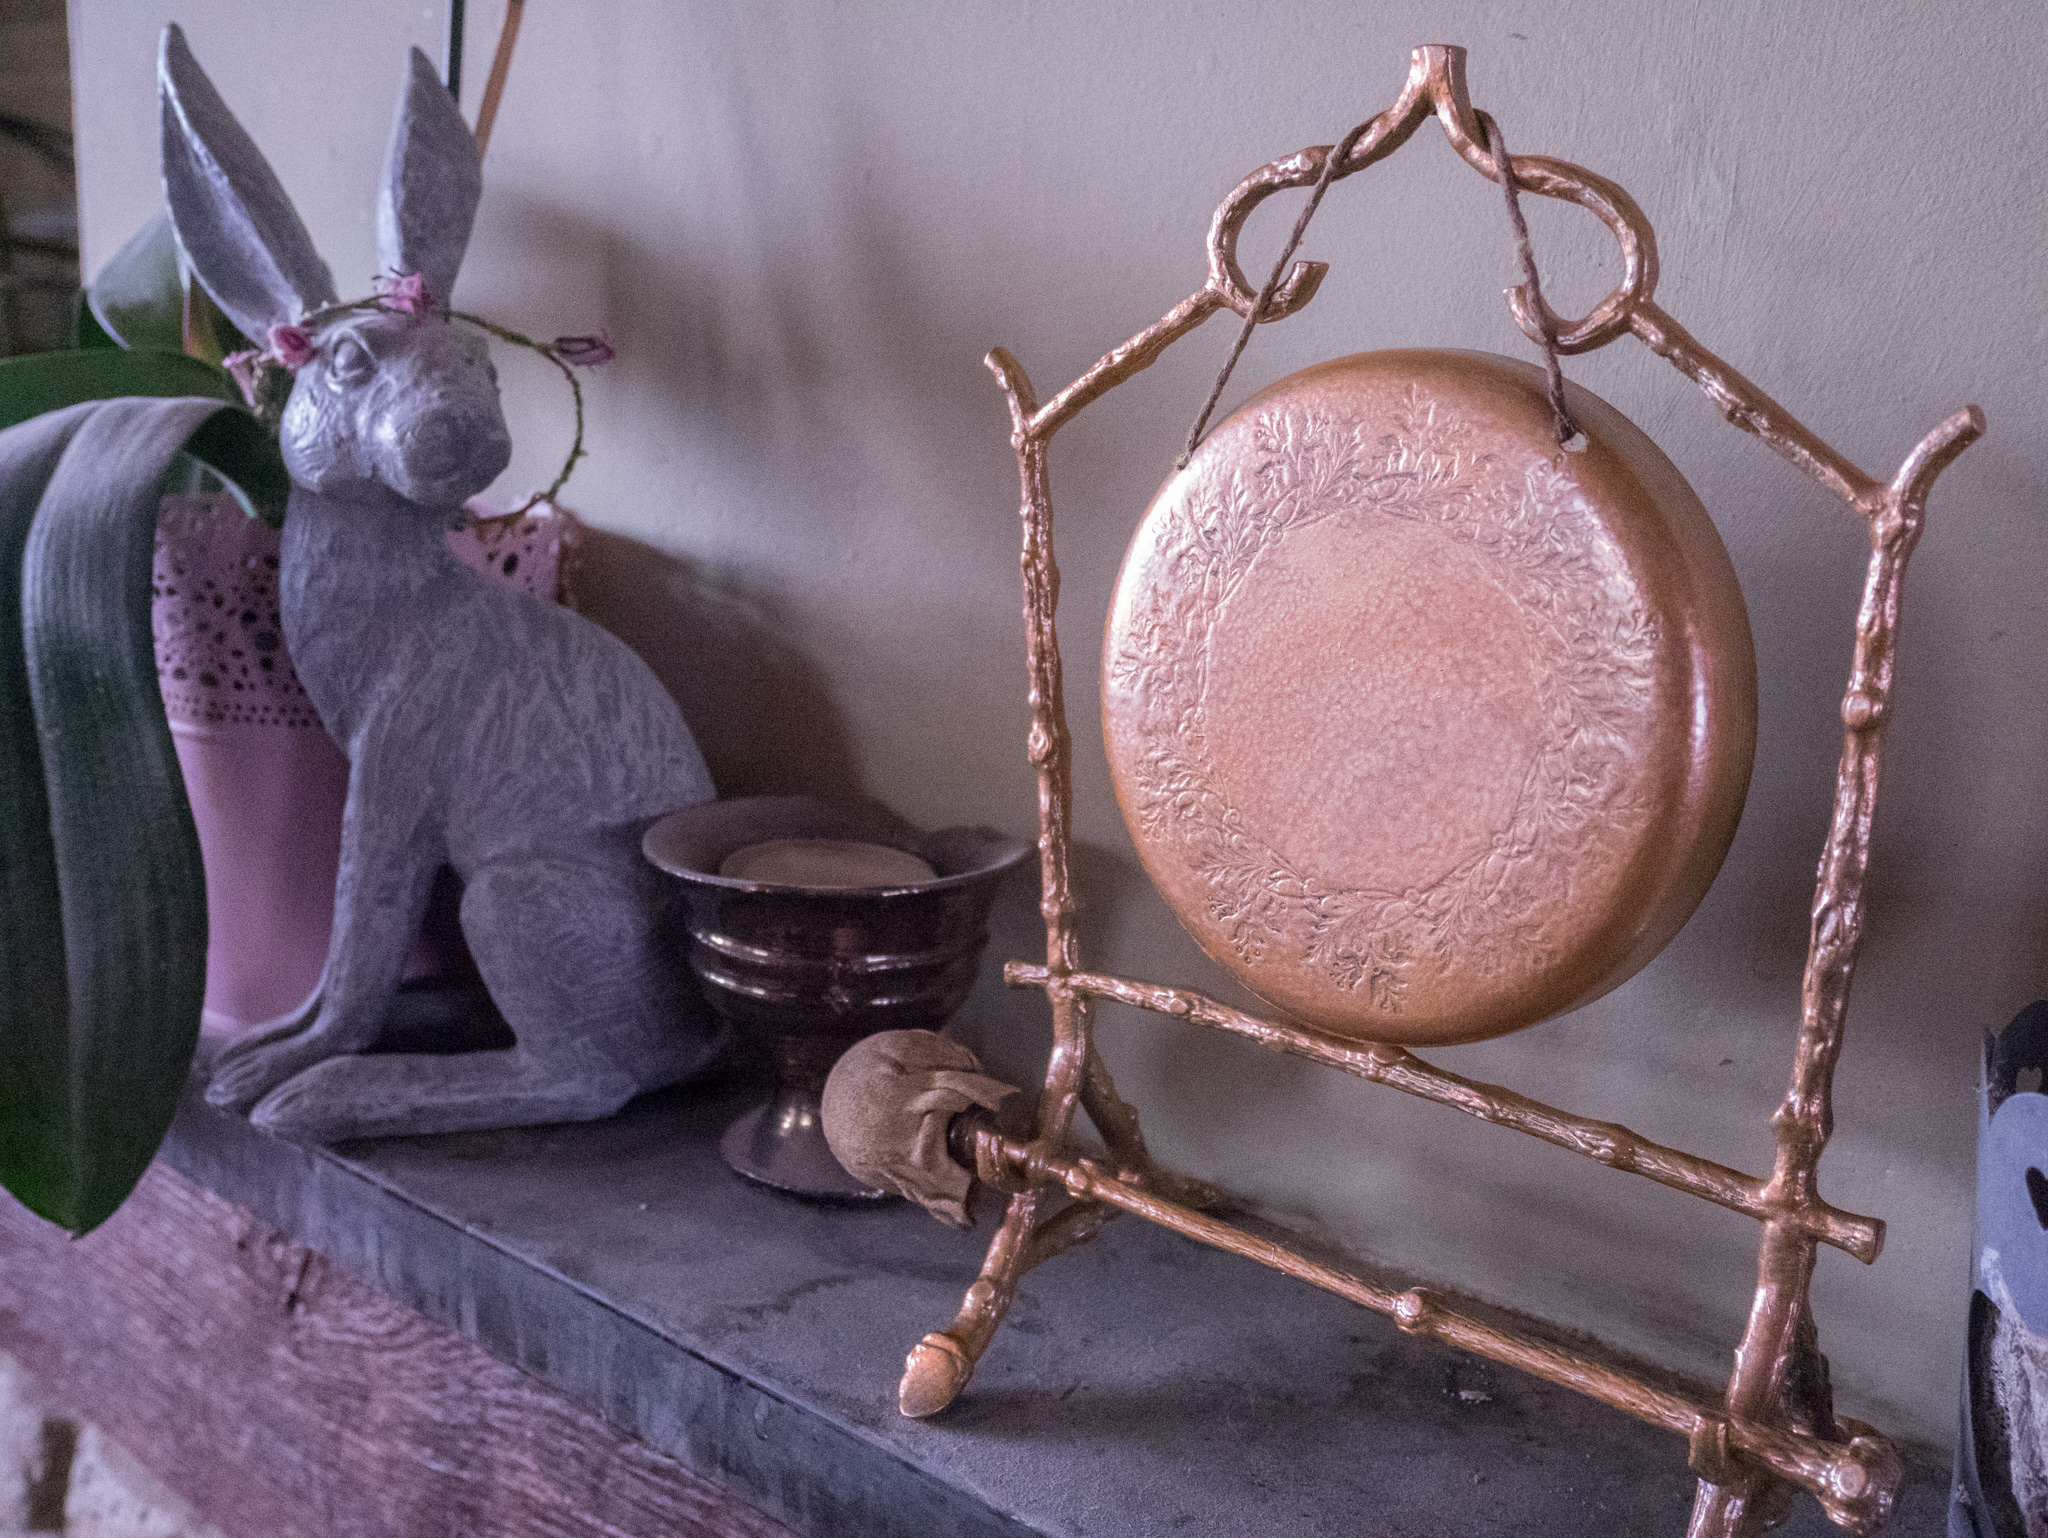 Painting my gong copper